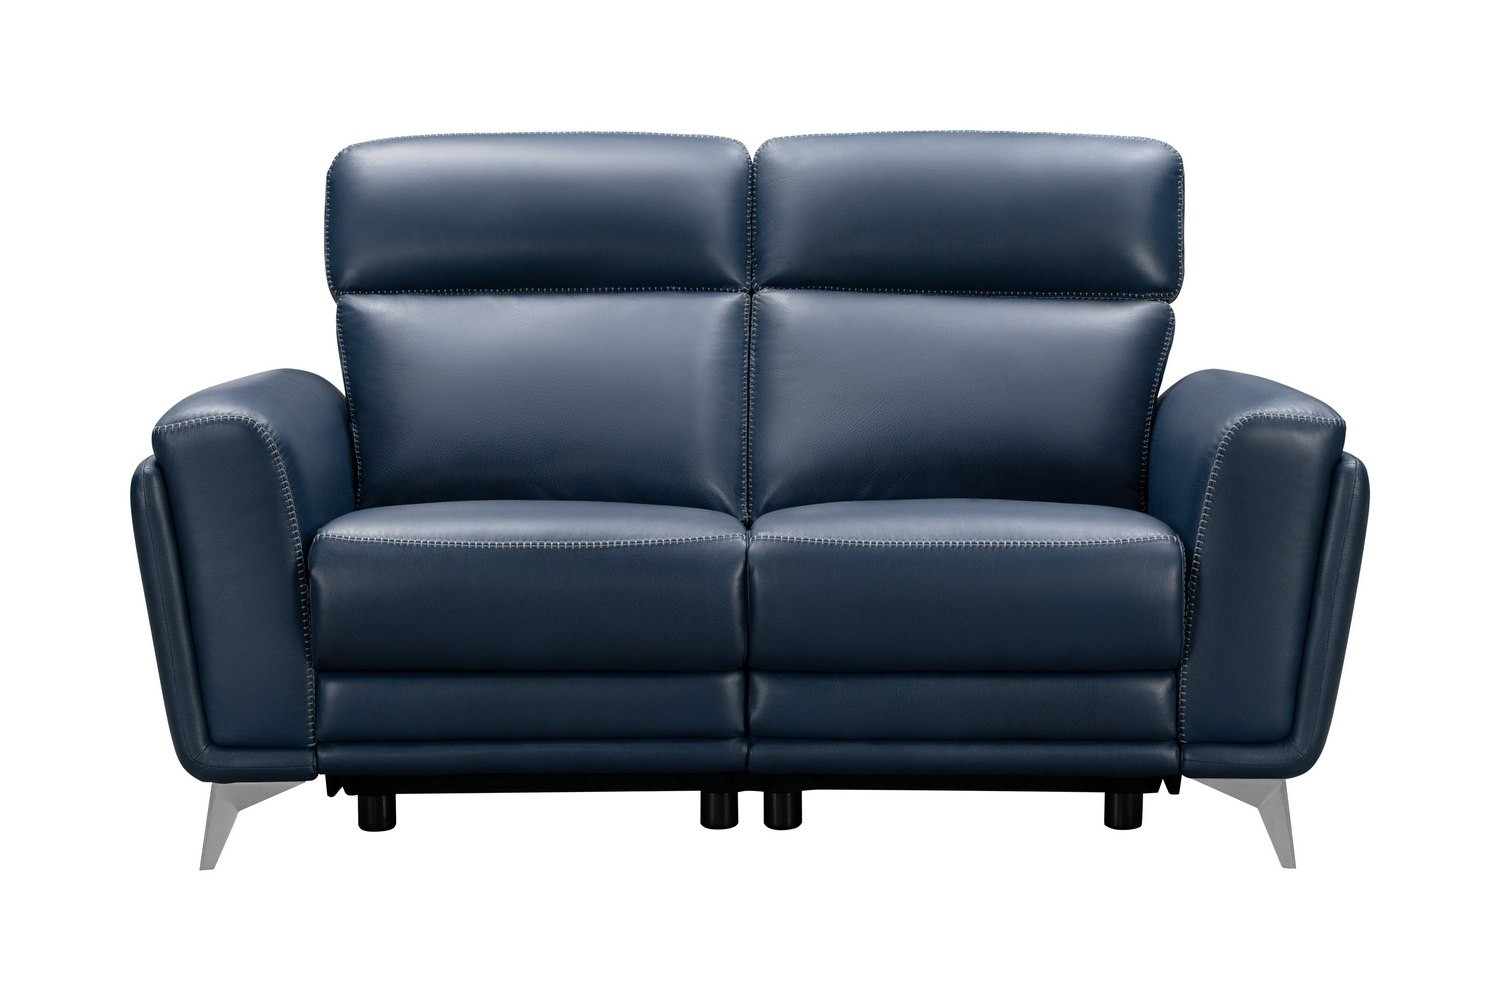 Barcalounger Cameron Power Reclining Loveseat with Power Head Rests - Marco Navy Blue/Leather Match